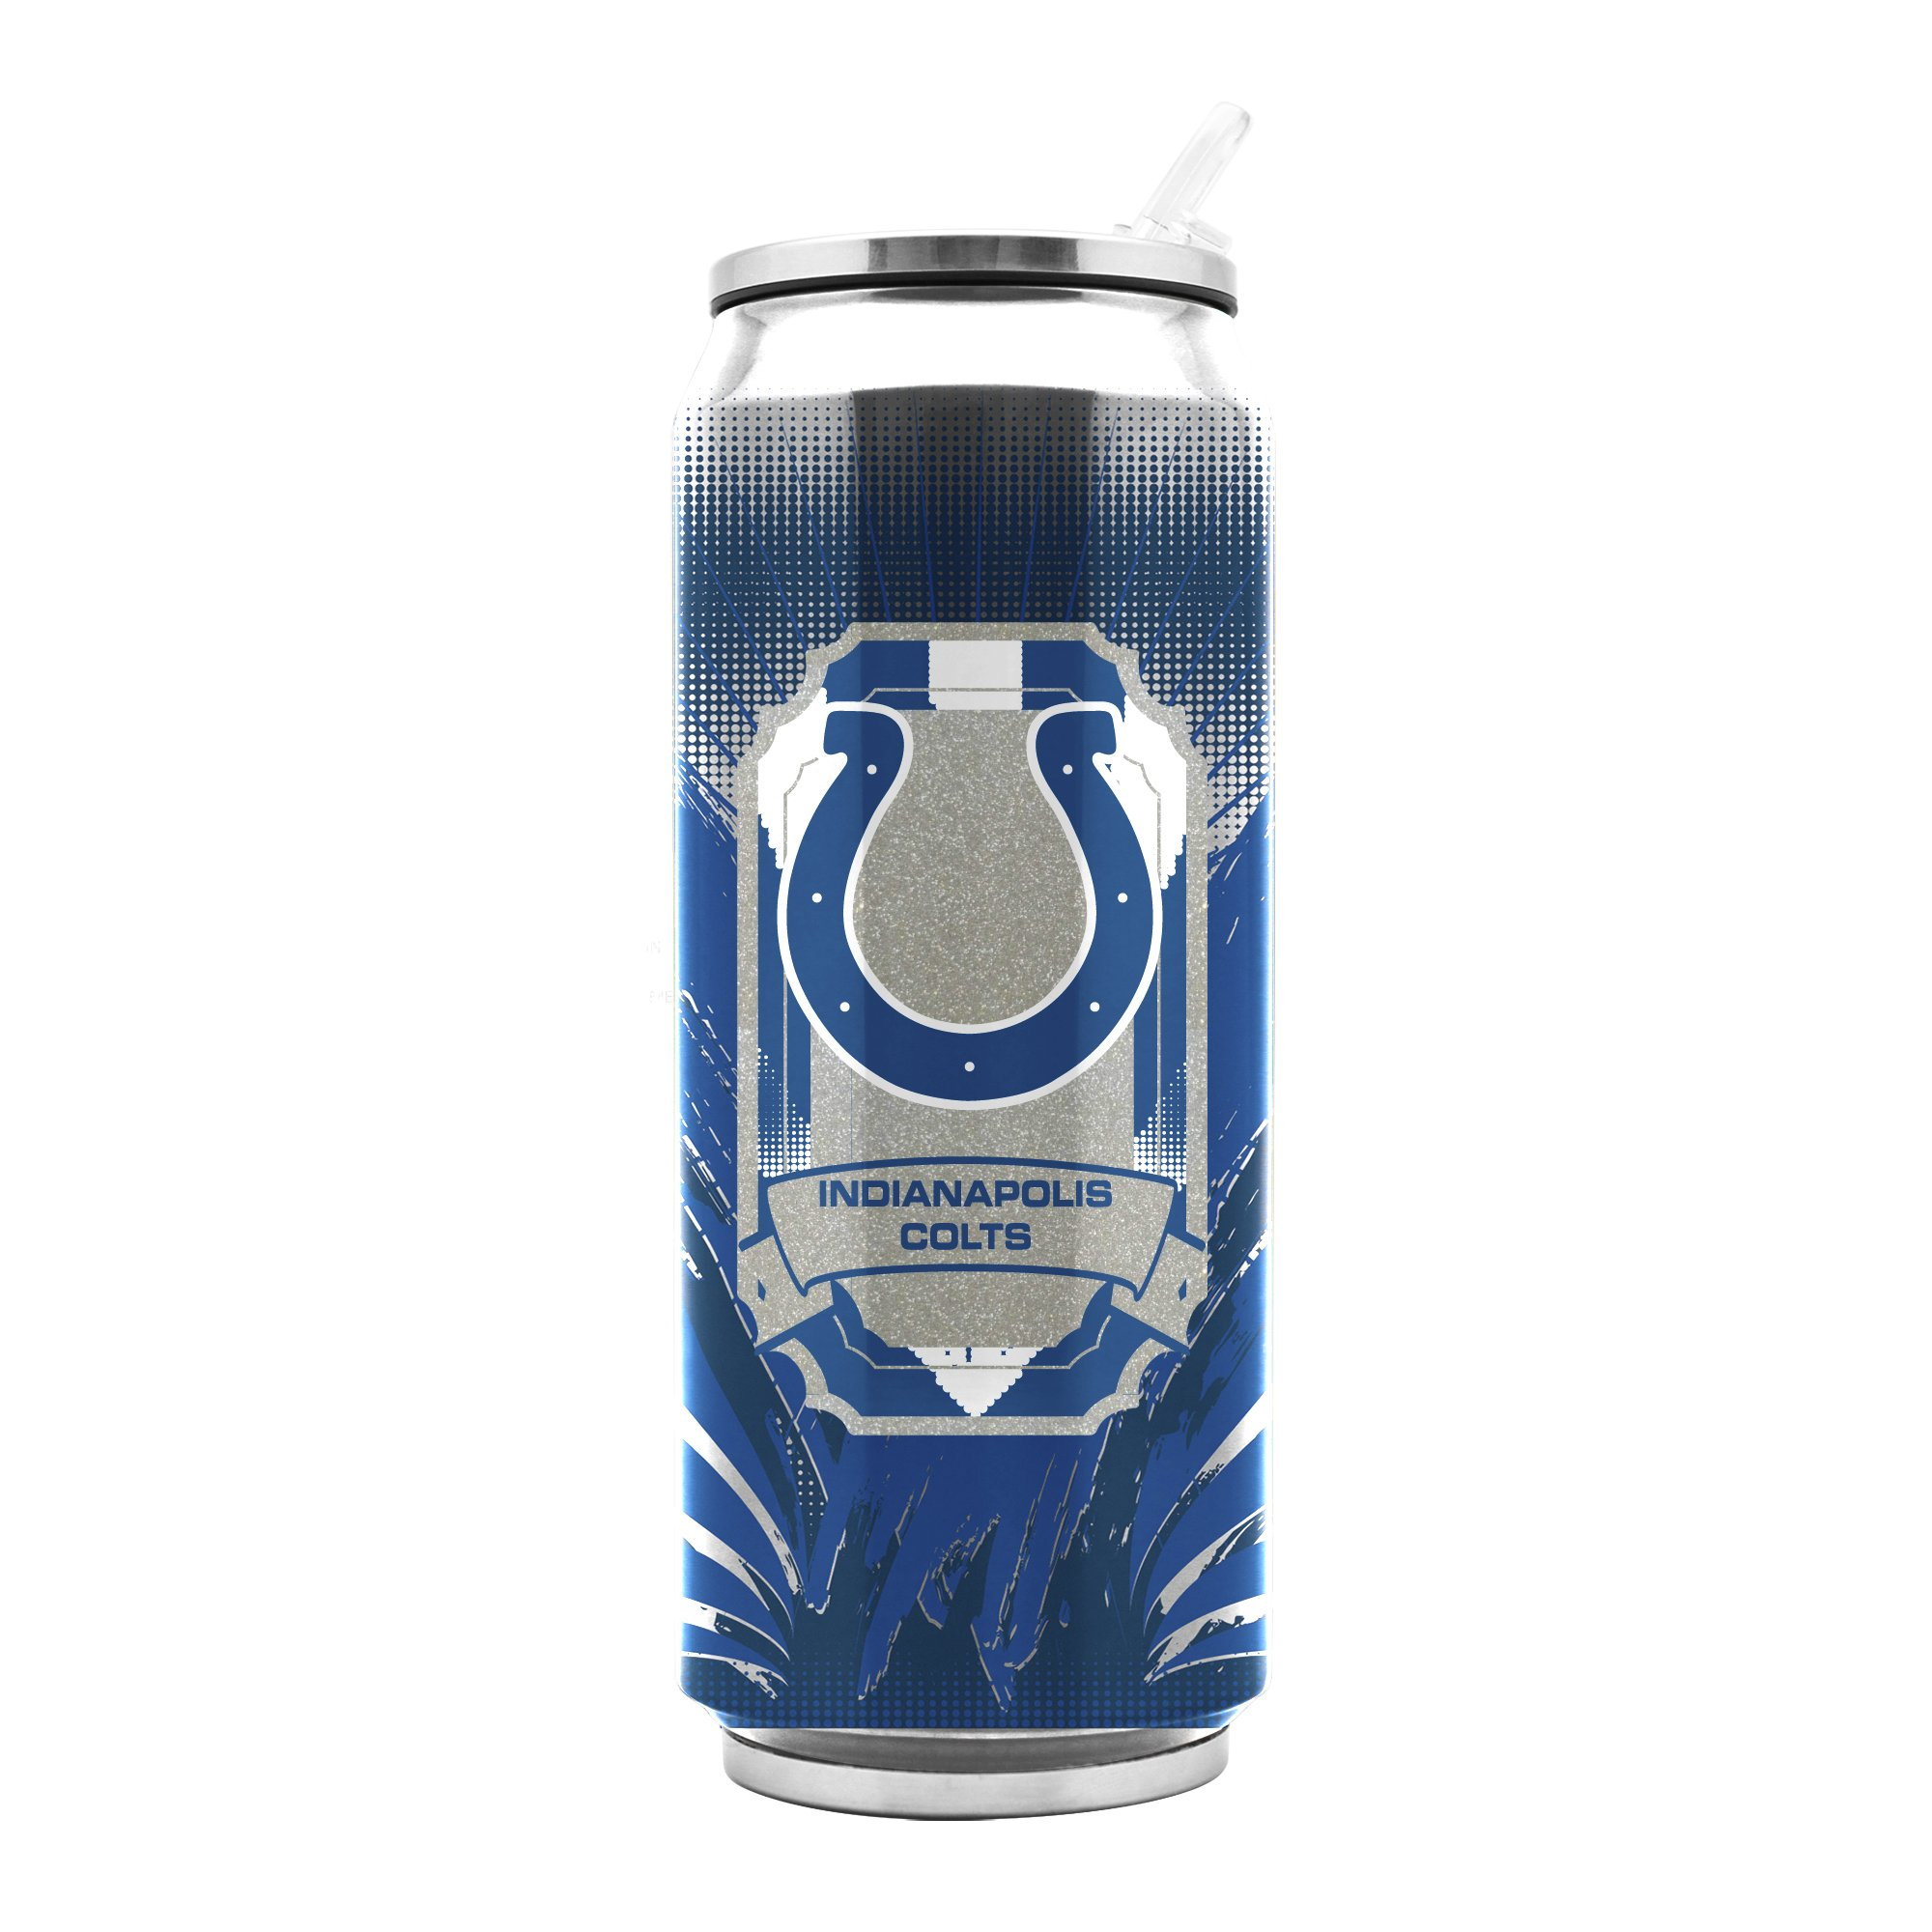 NFL Indianapolis Colts 16oz Double Wall Stainless Steel Thermocan by Duck House